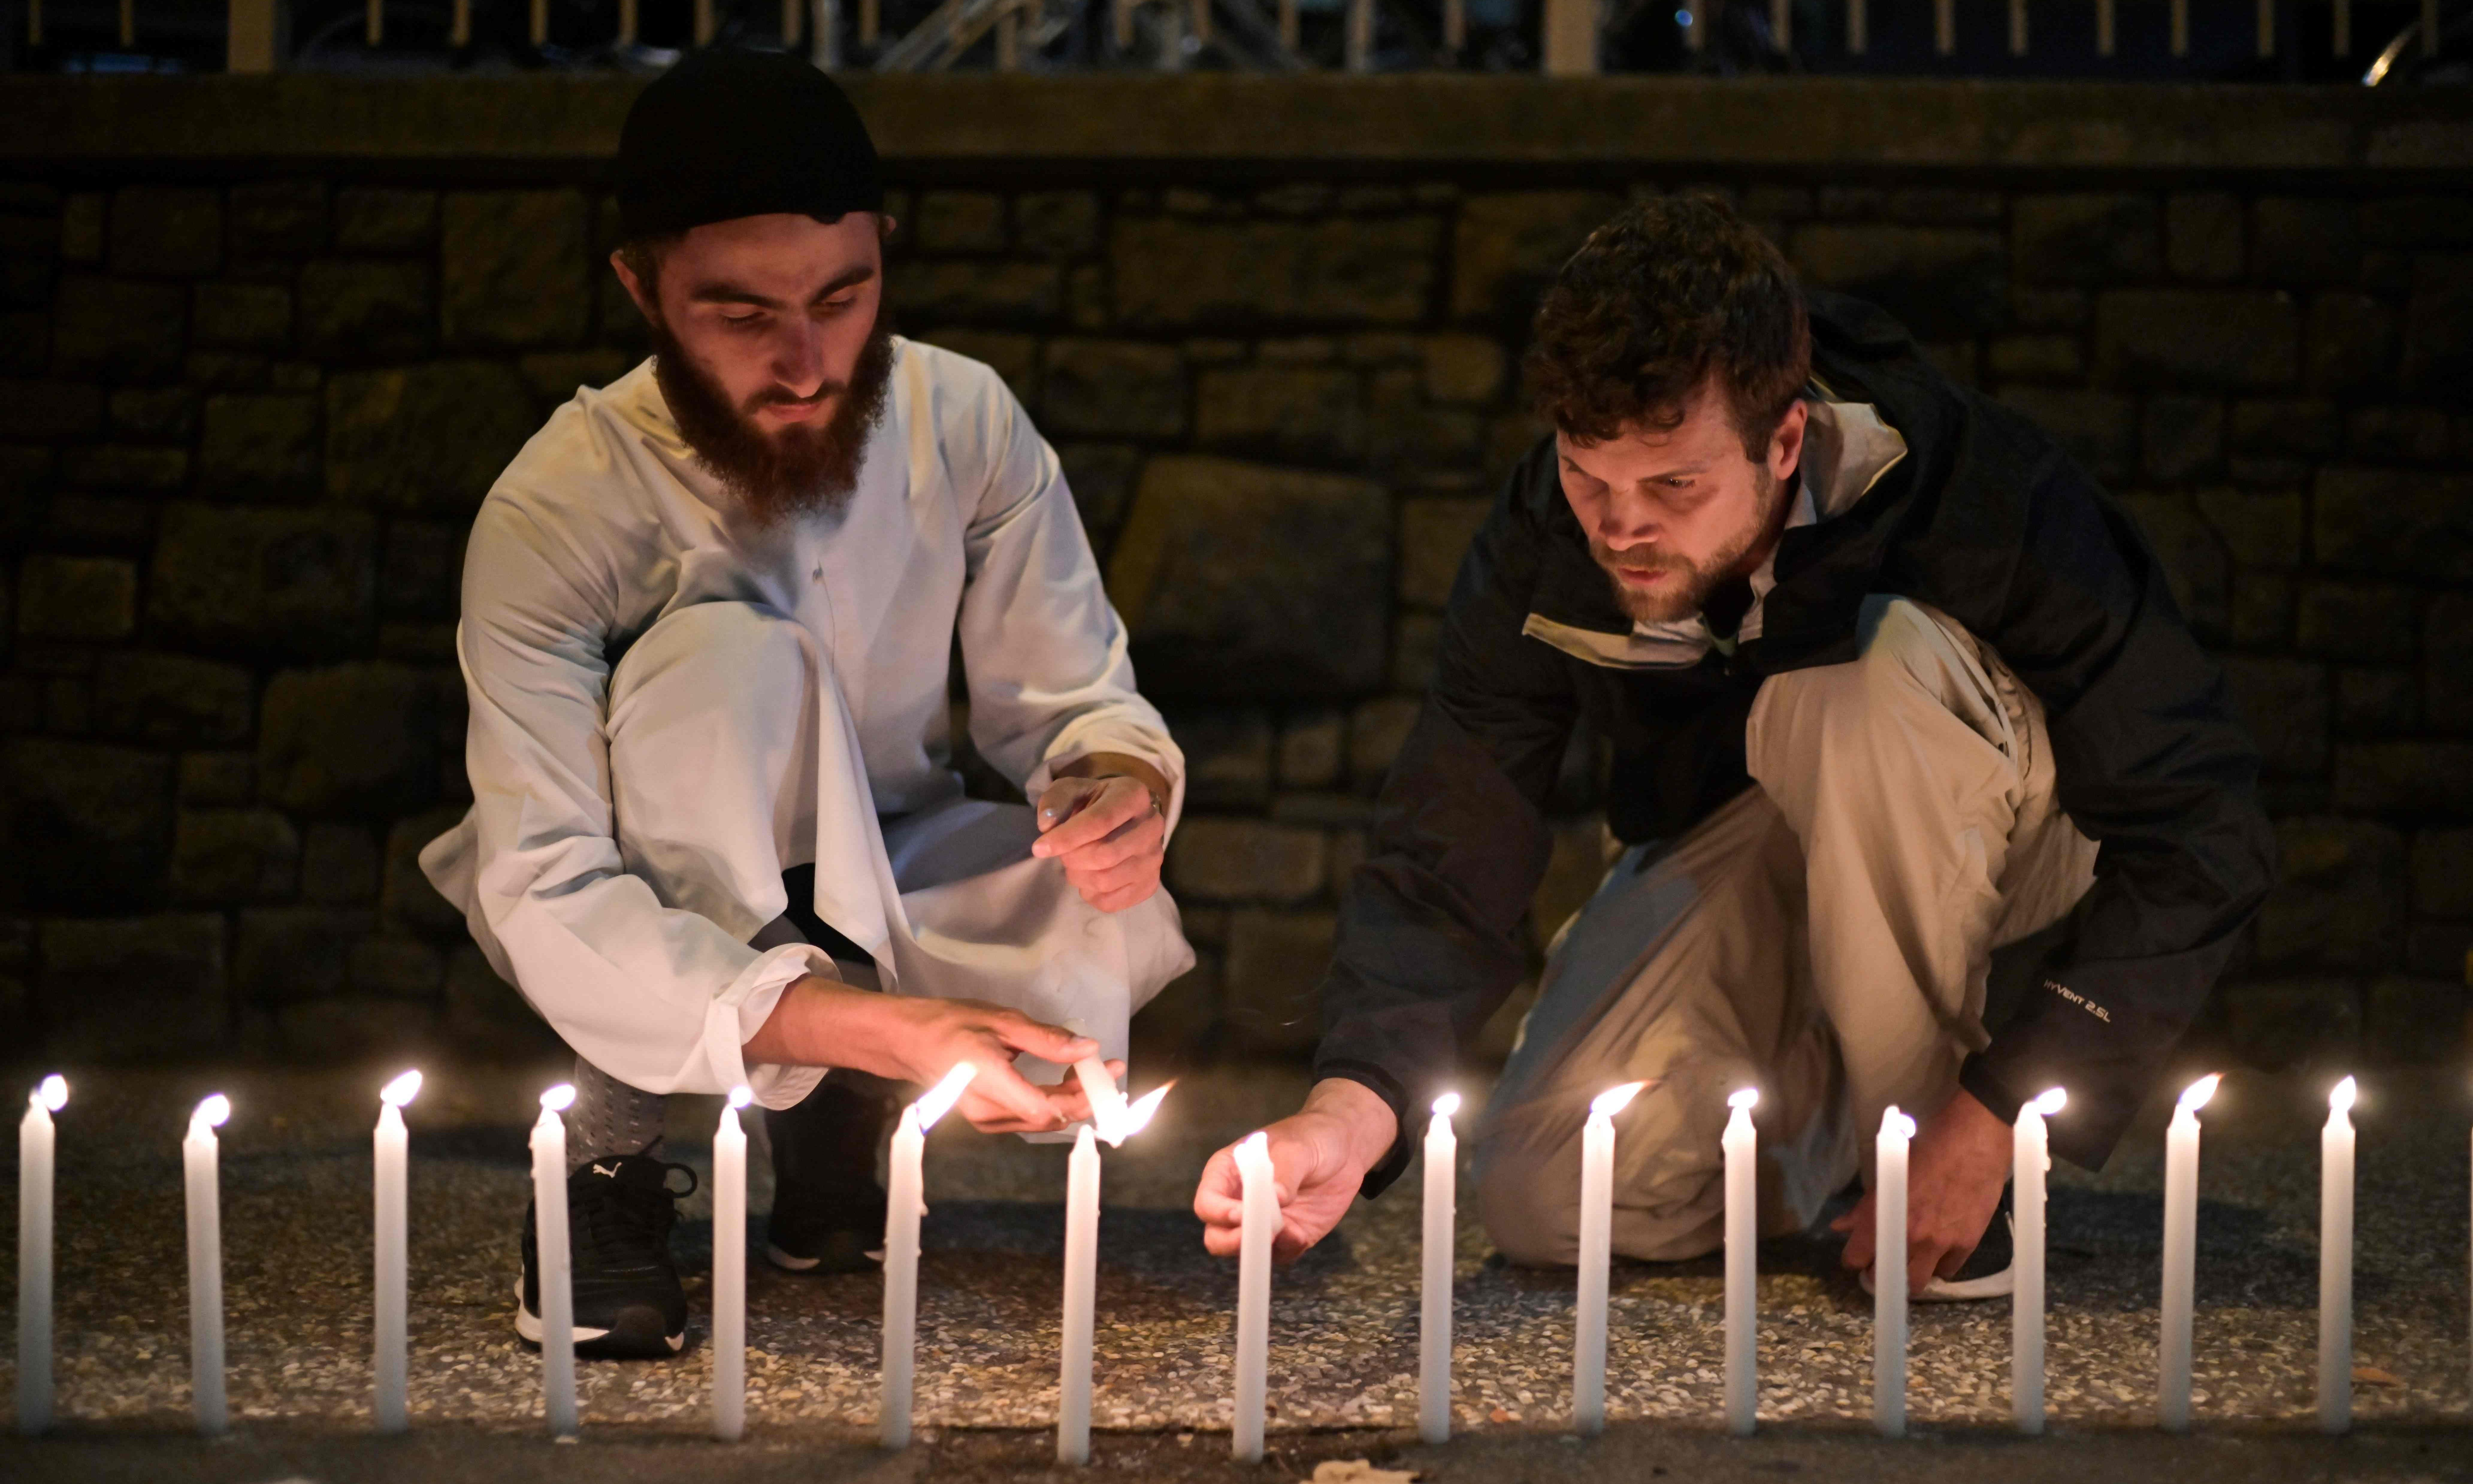 Do not let raw anger cloud our judgment after Christchurch